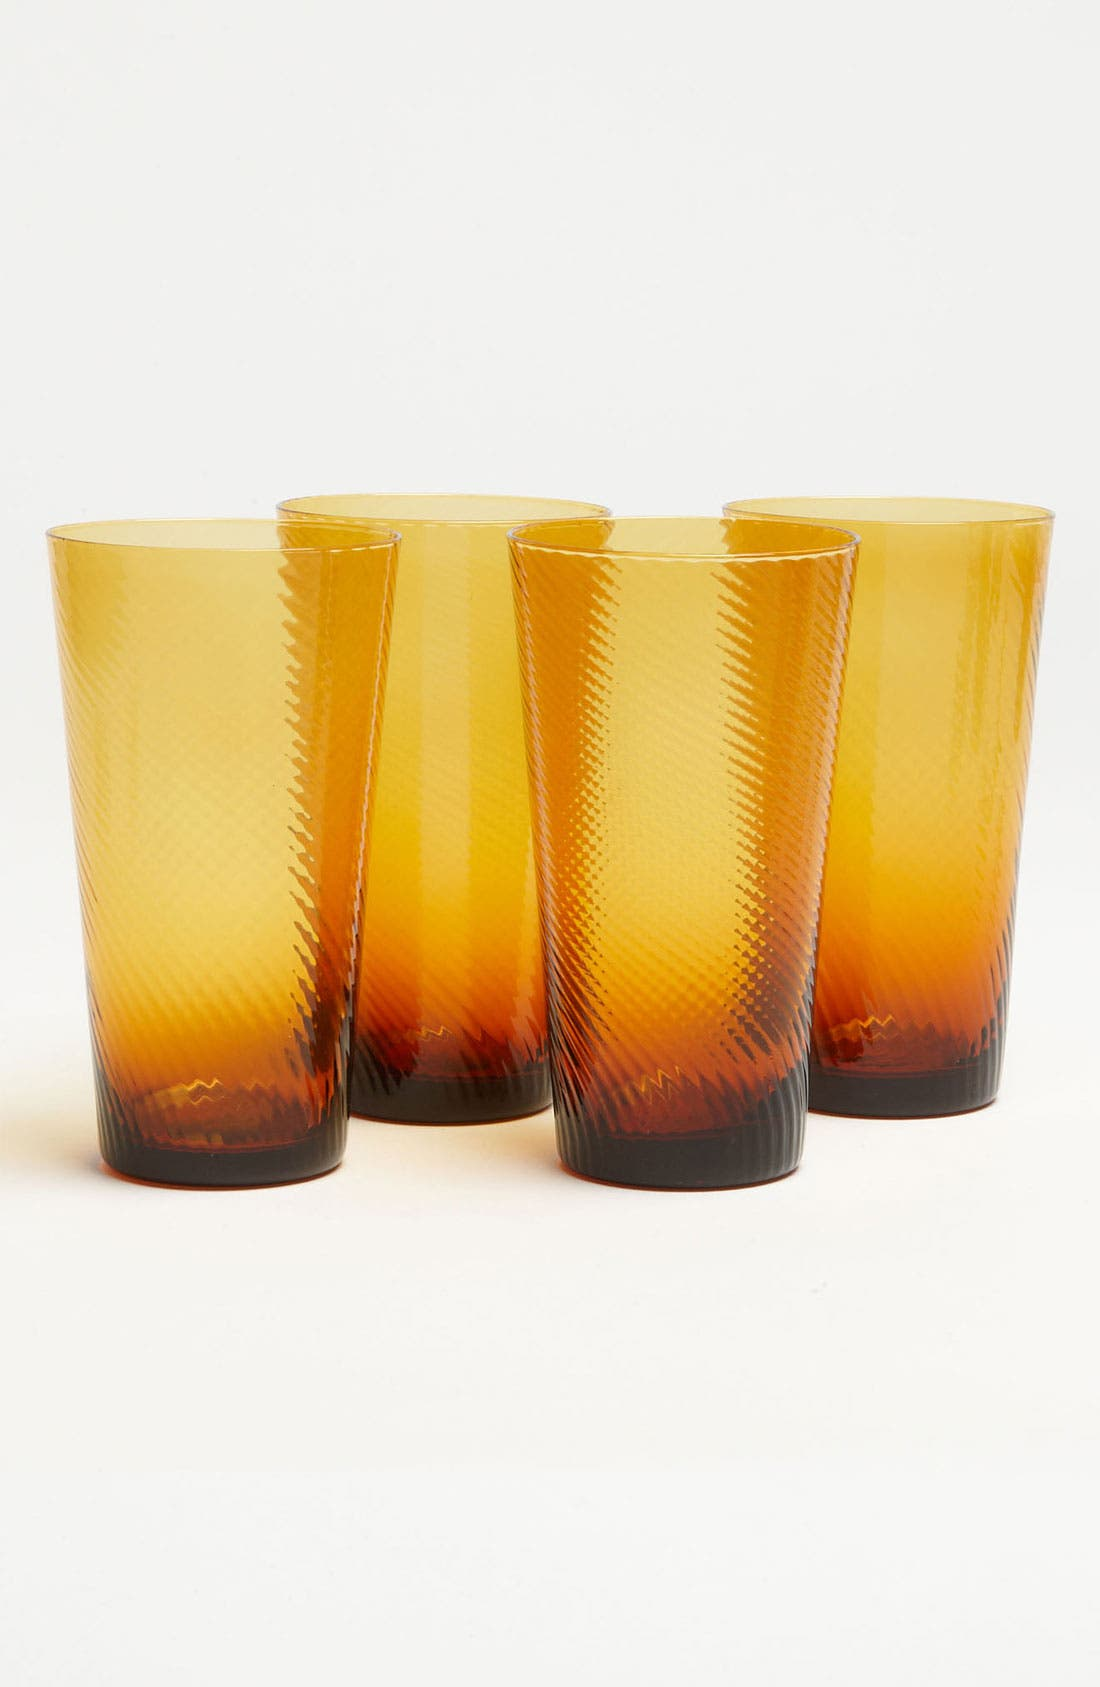 Main Image - 'Roma' High Ball Glasses (Set of 4)